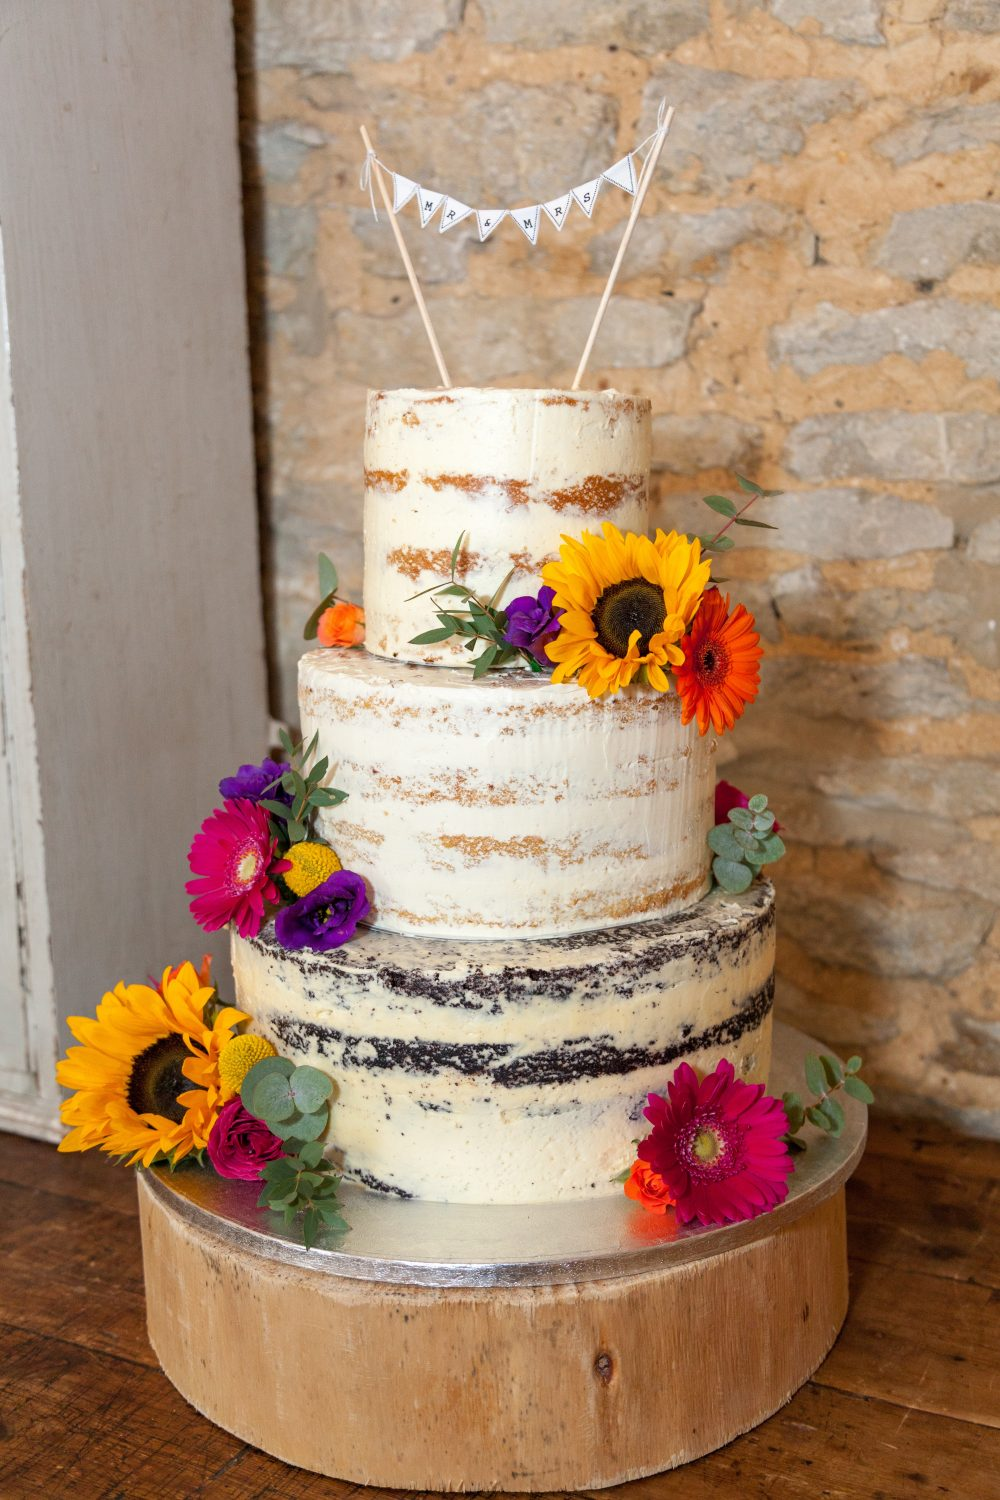 Claire and Stuart's Wedding Cake with Sunflowers